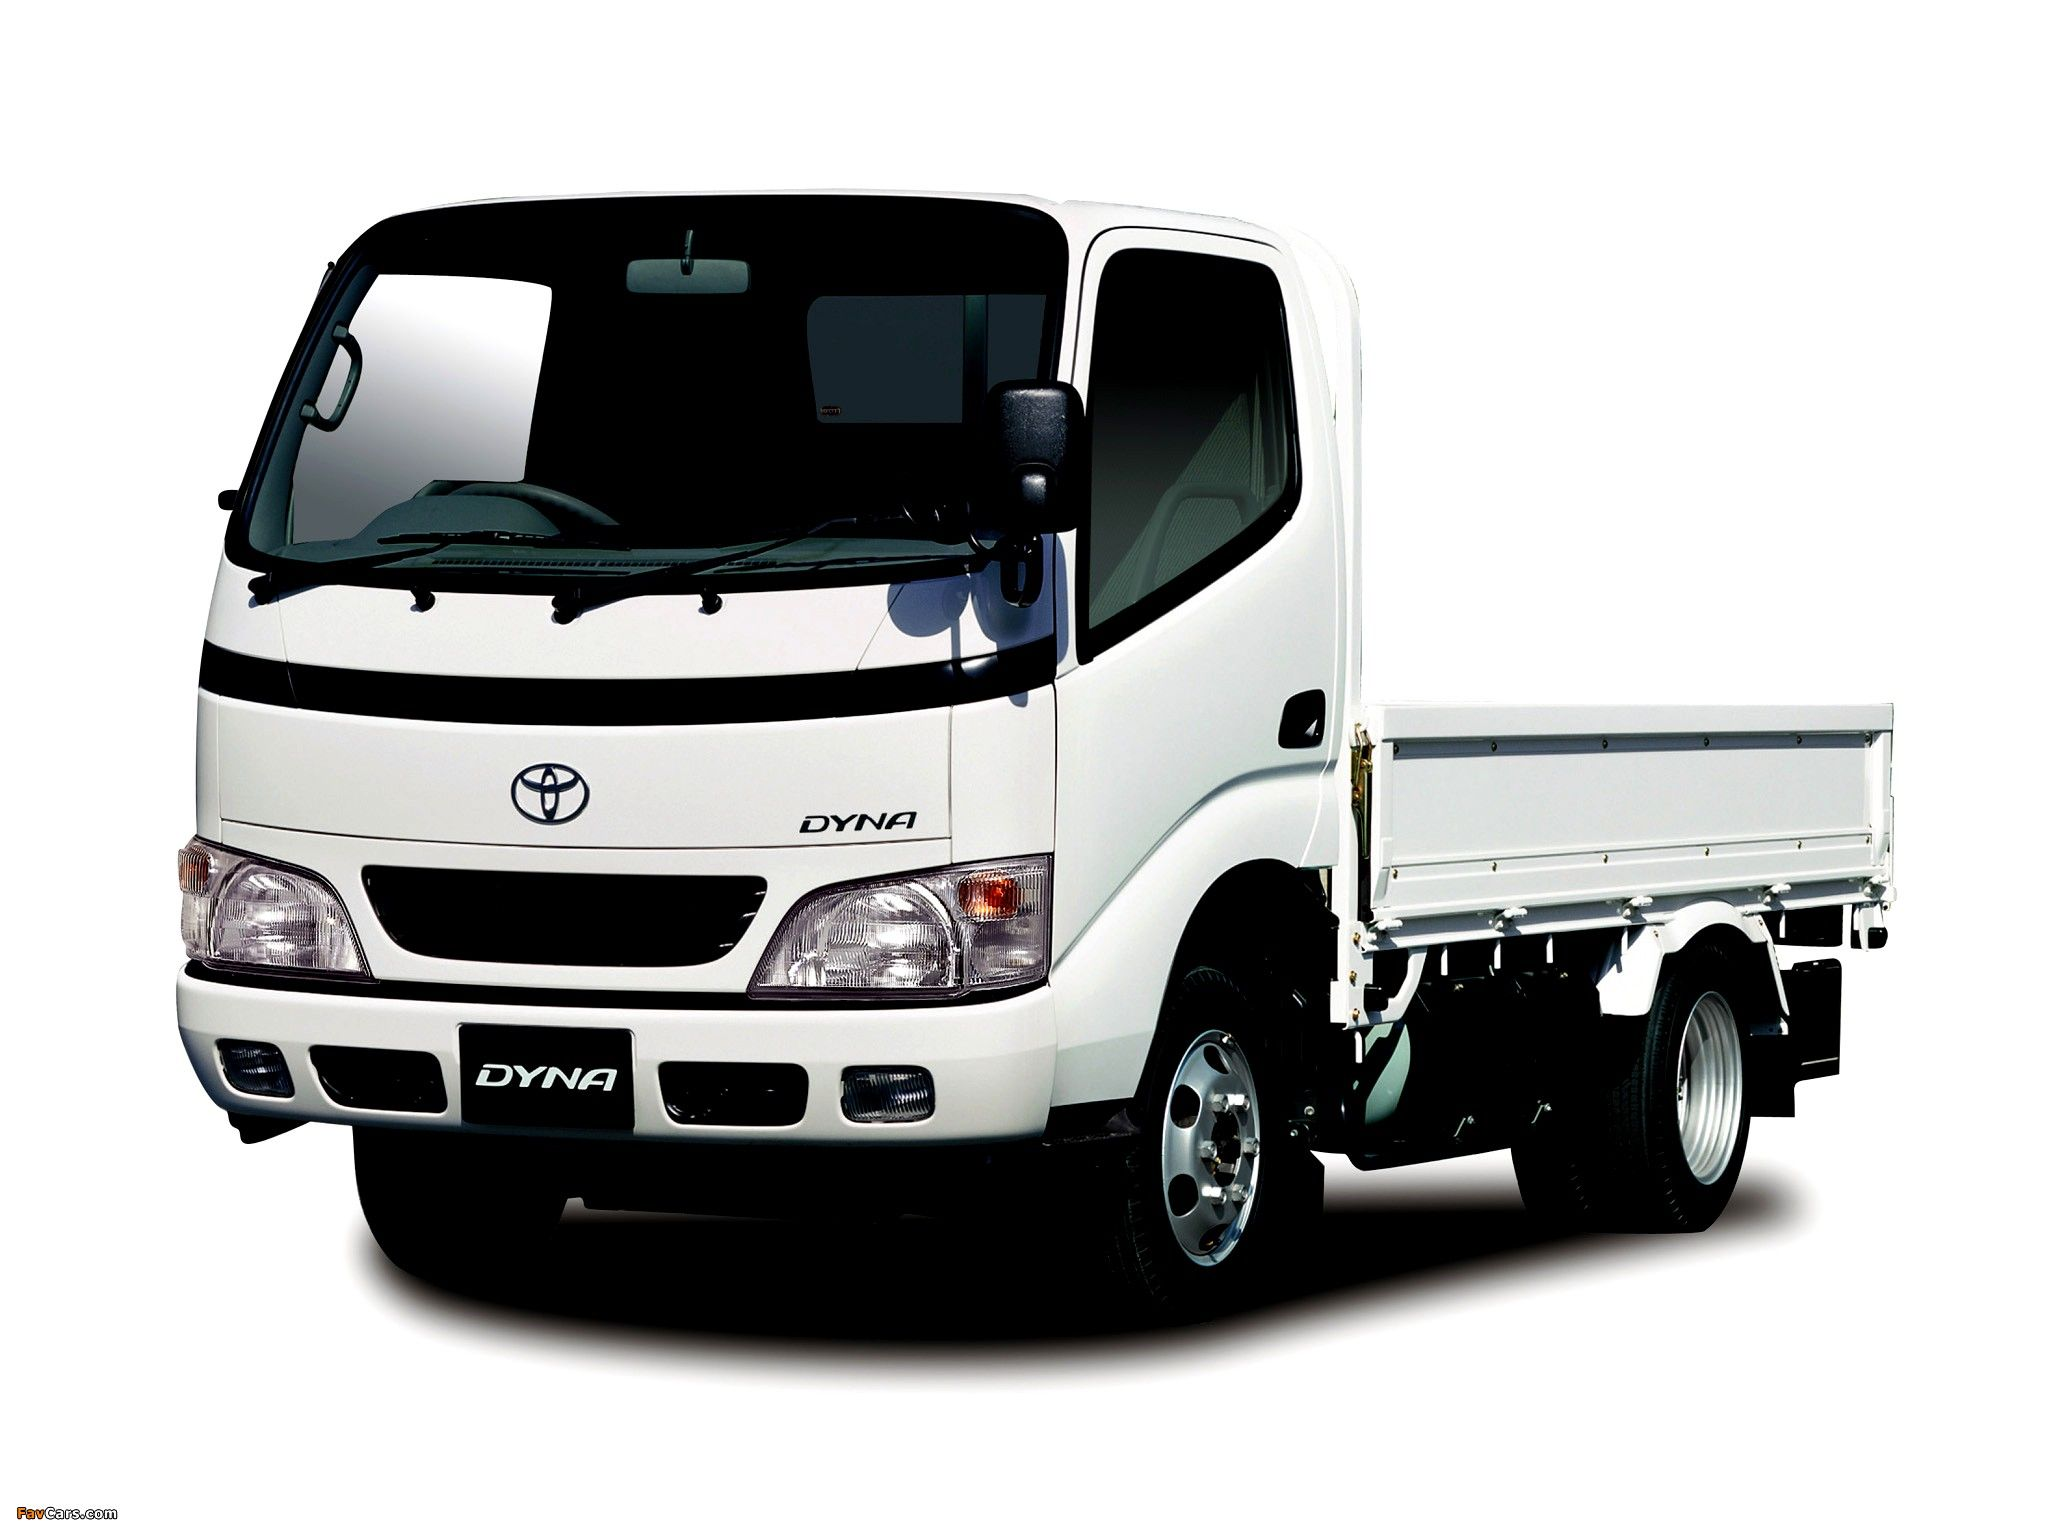 2014 Toyota Dyna is the latest model of the light-truck from Toyota ...